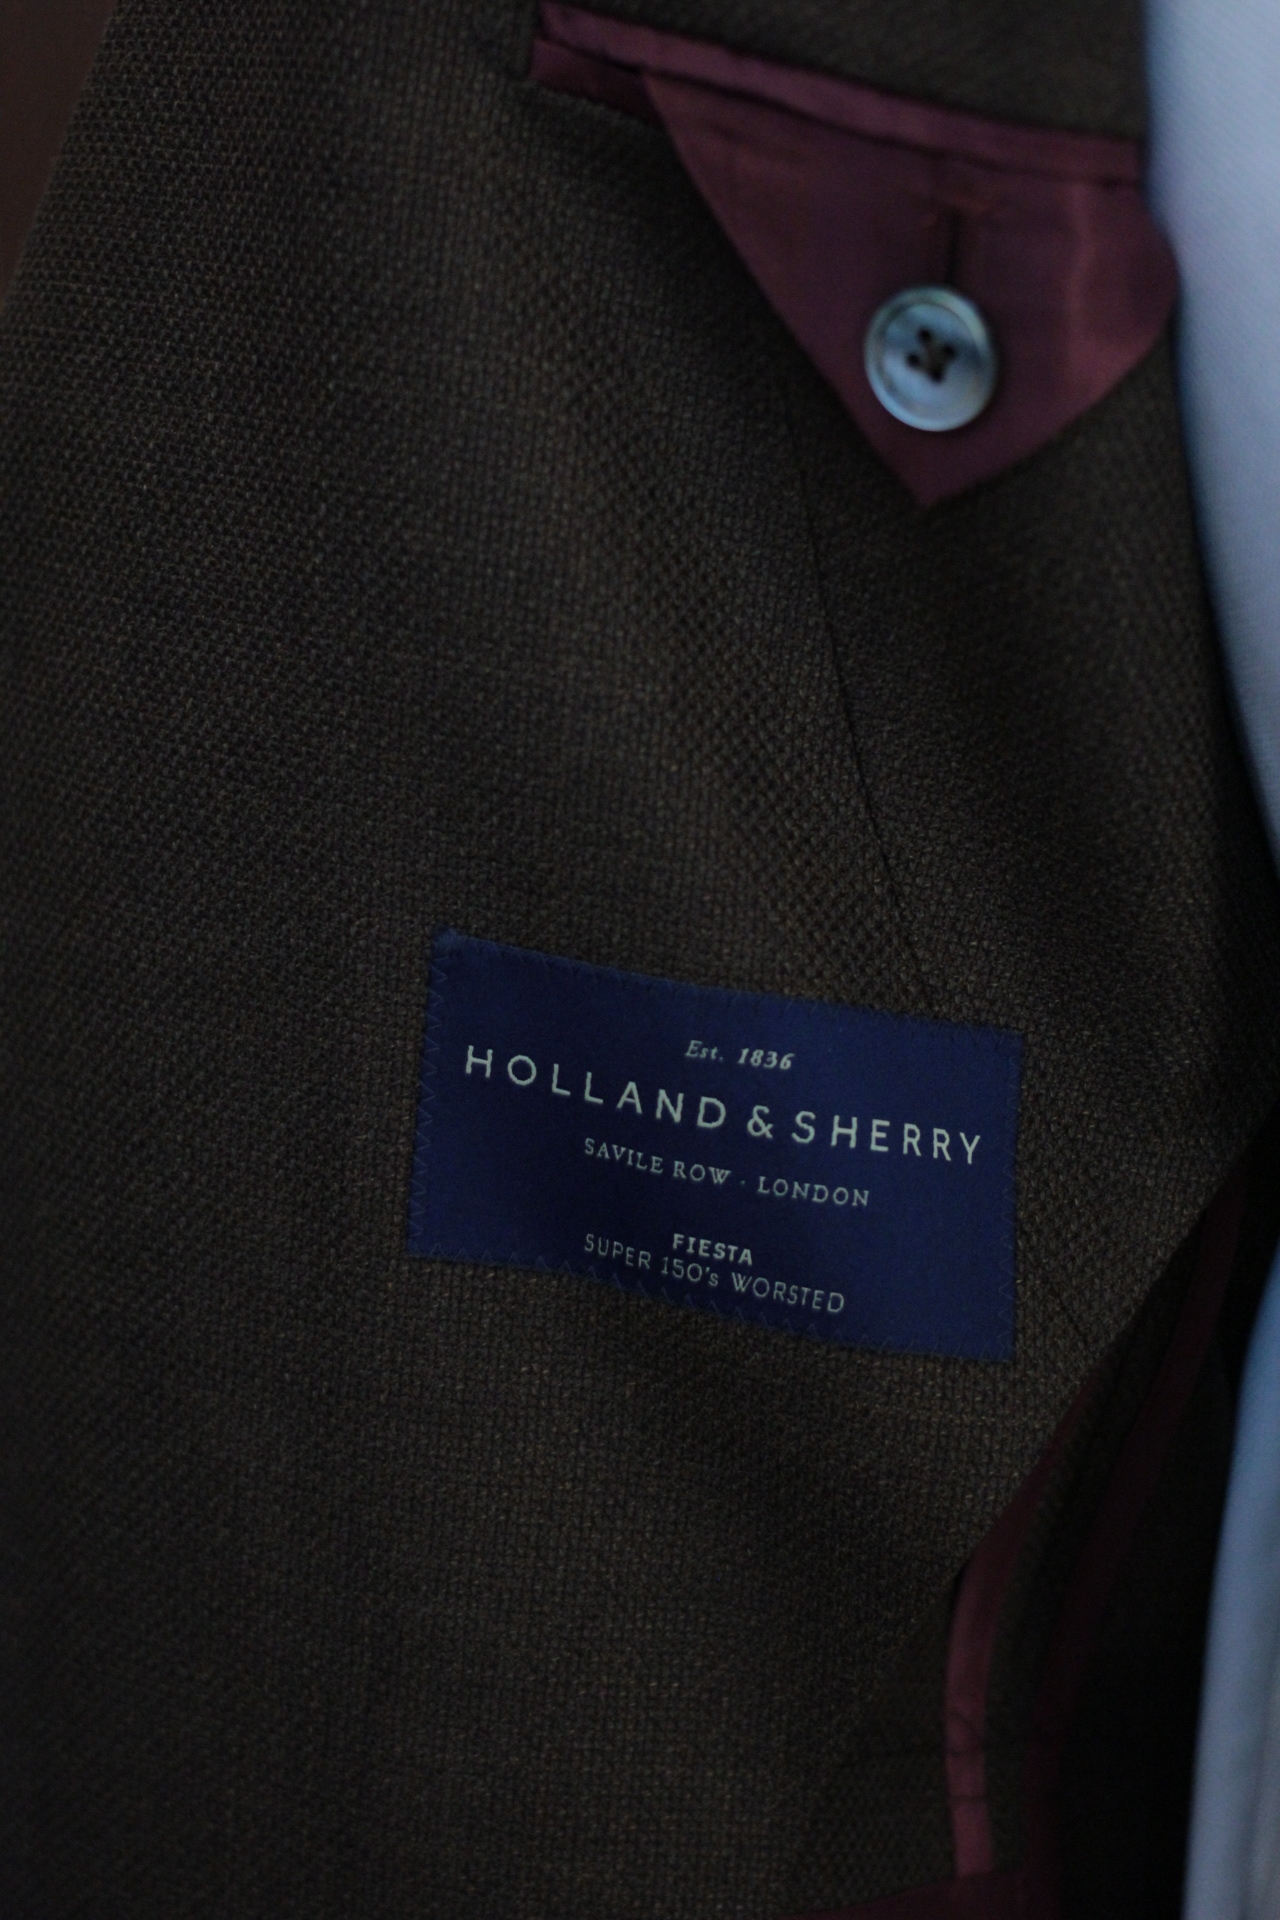 Super 150s WORSTED by Holland & Sherry